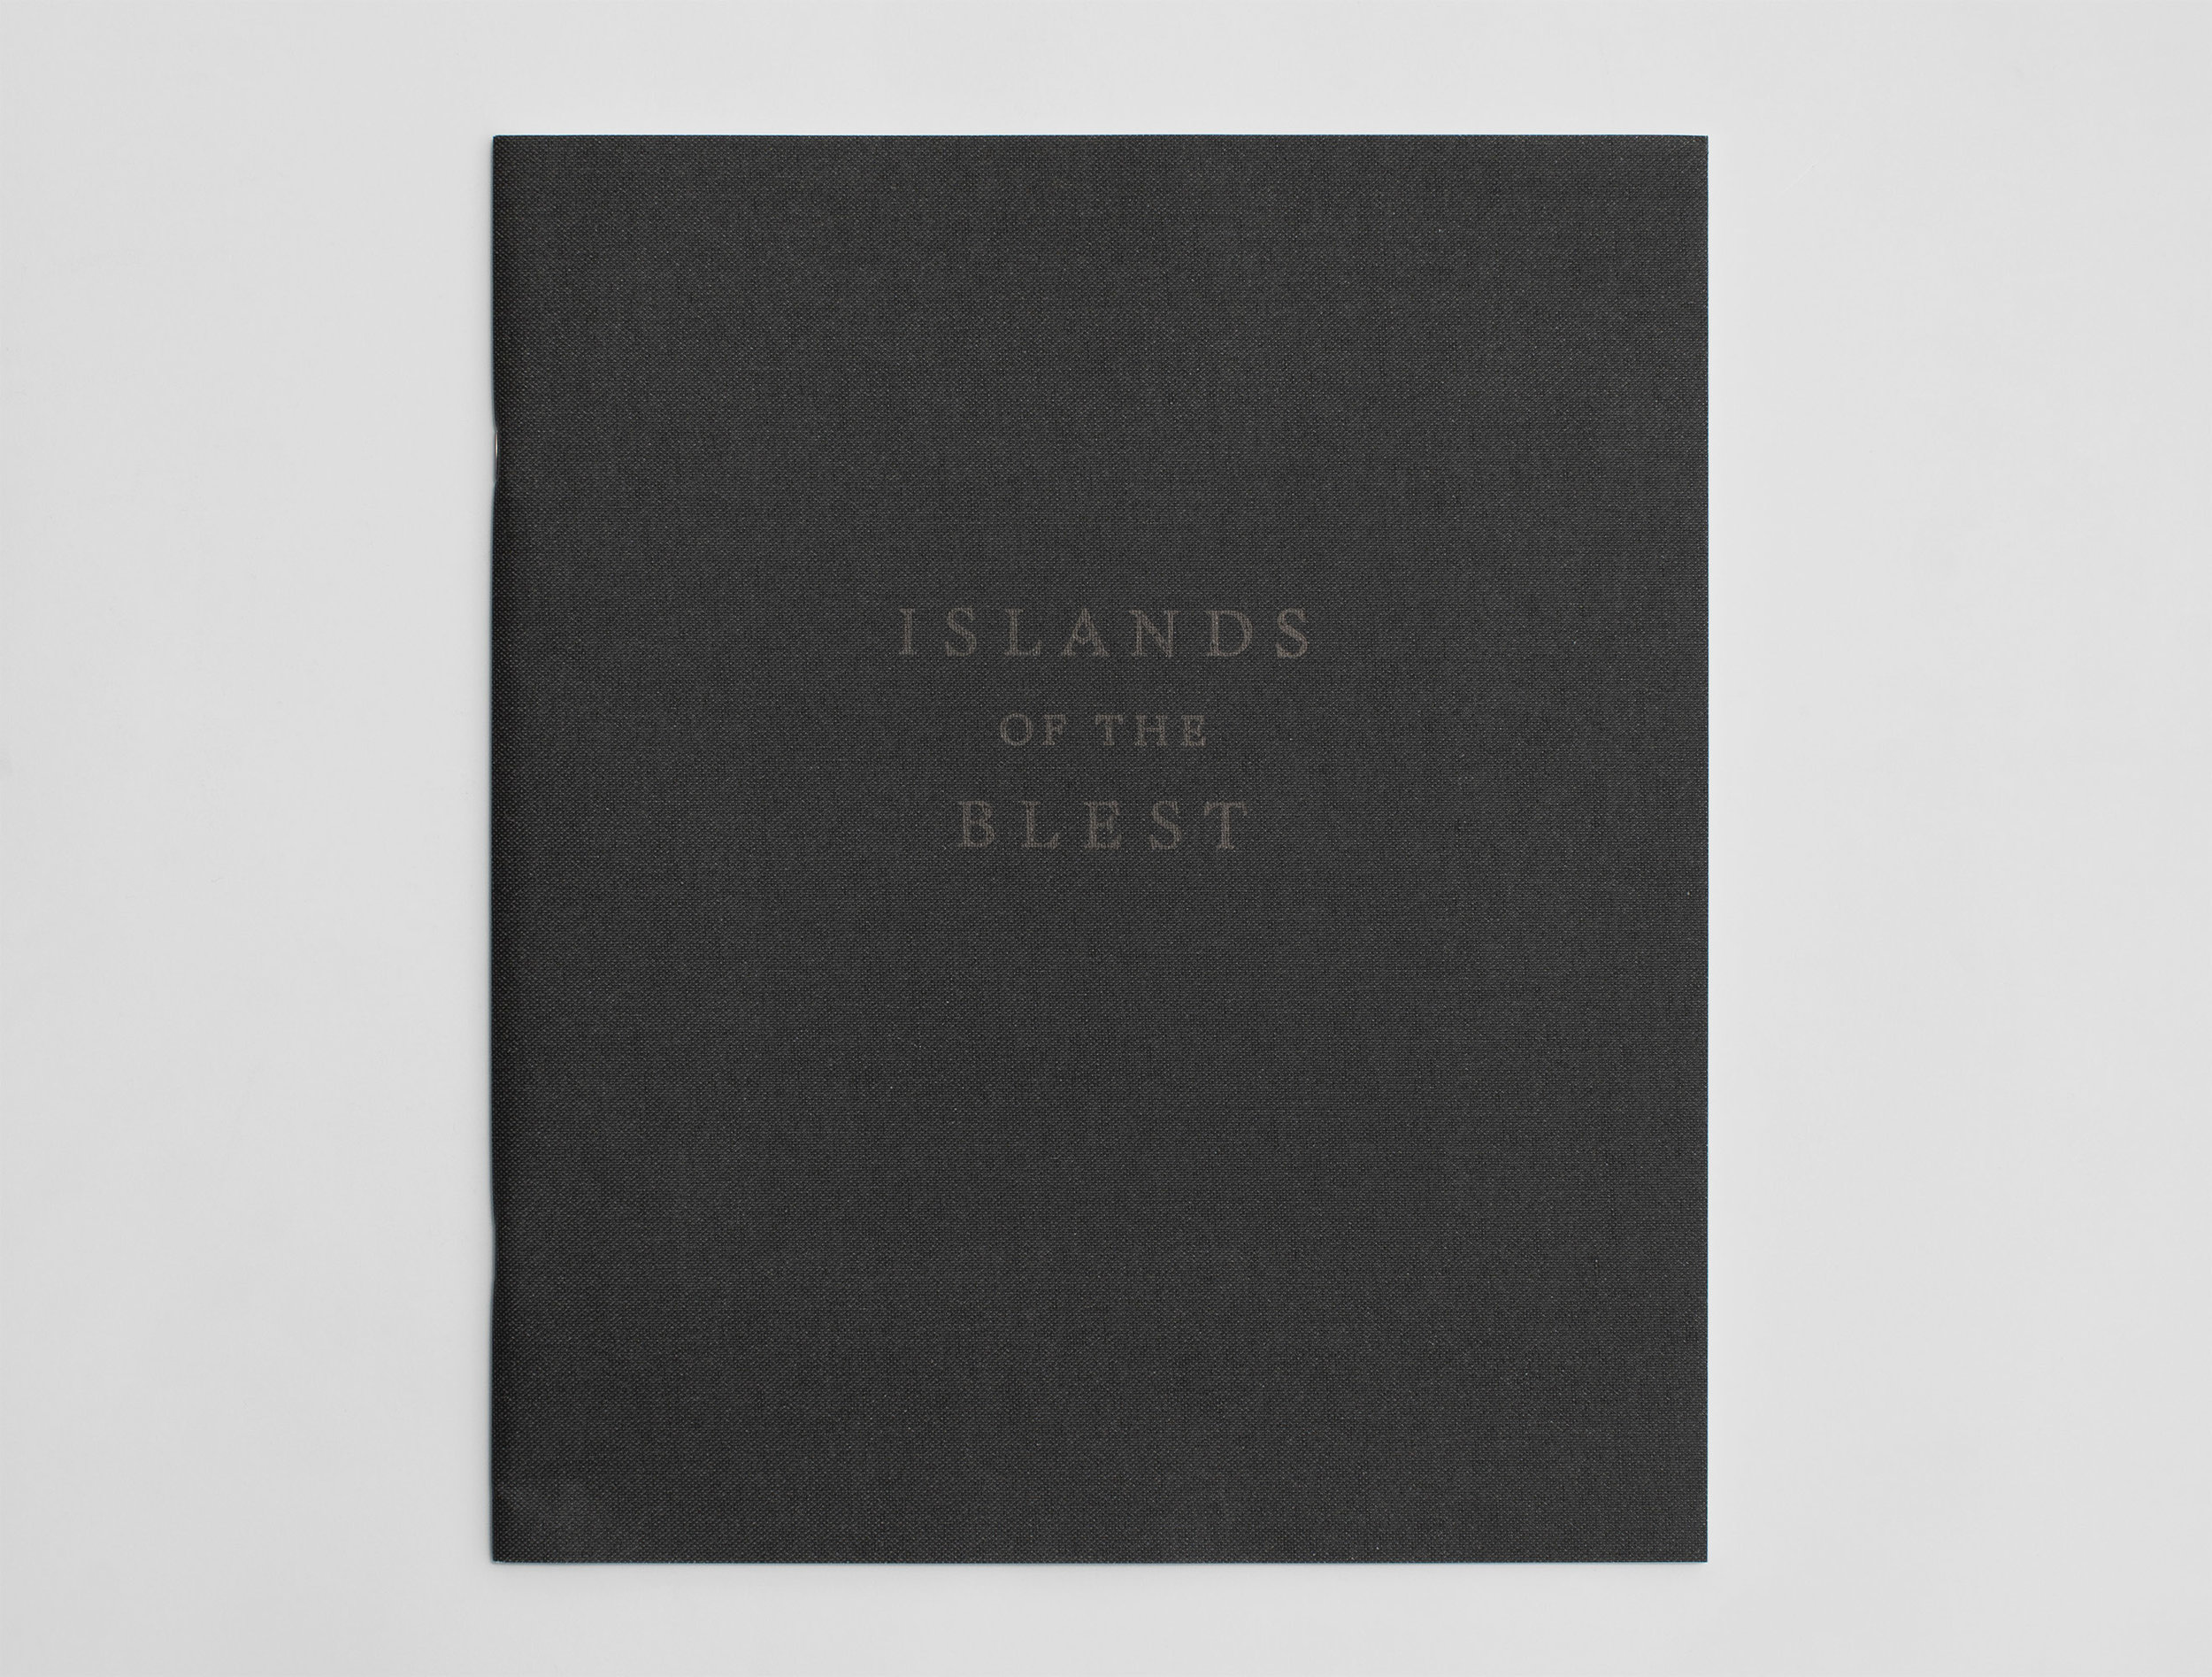 The photos in 'Islands of the Blest' depict various places in the American West and were taken over a hundred year time span, from the 1870s through the 1970s. Photographers represented range from the unknown to some of the most distinguished practitioners of the medium. All images were sourced from digital public archives.